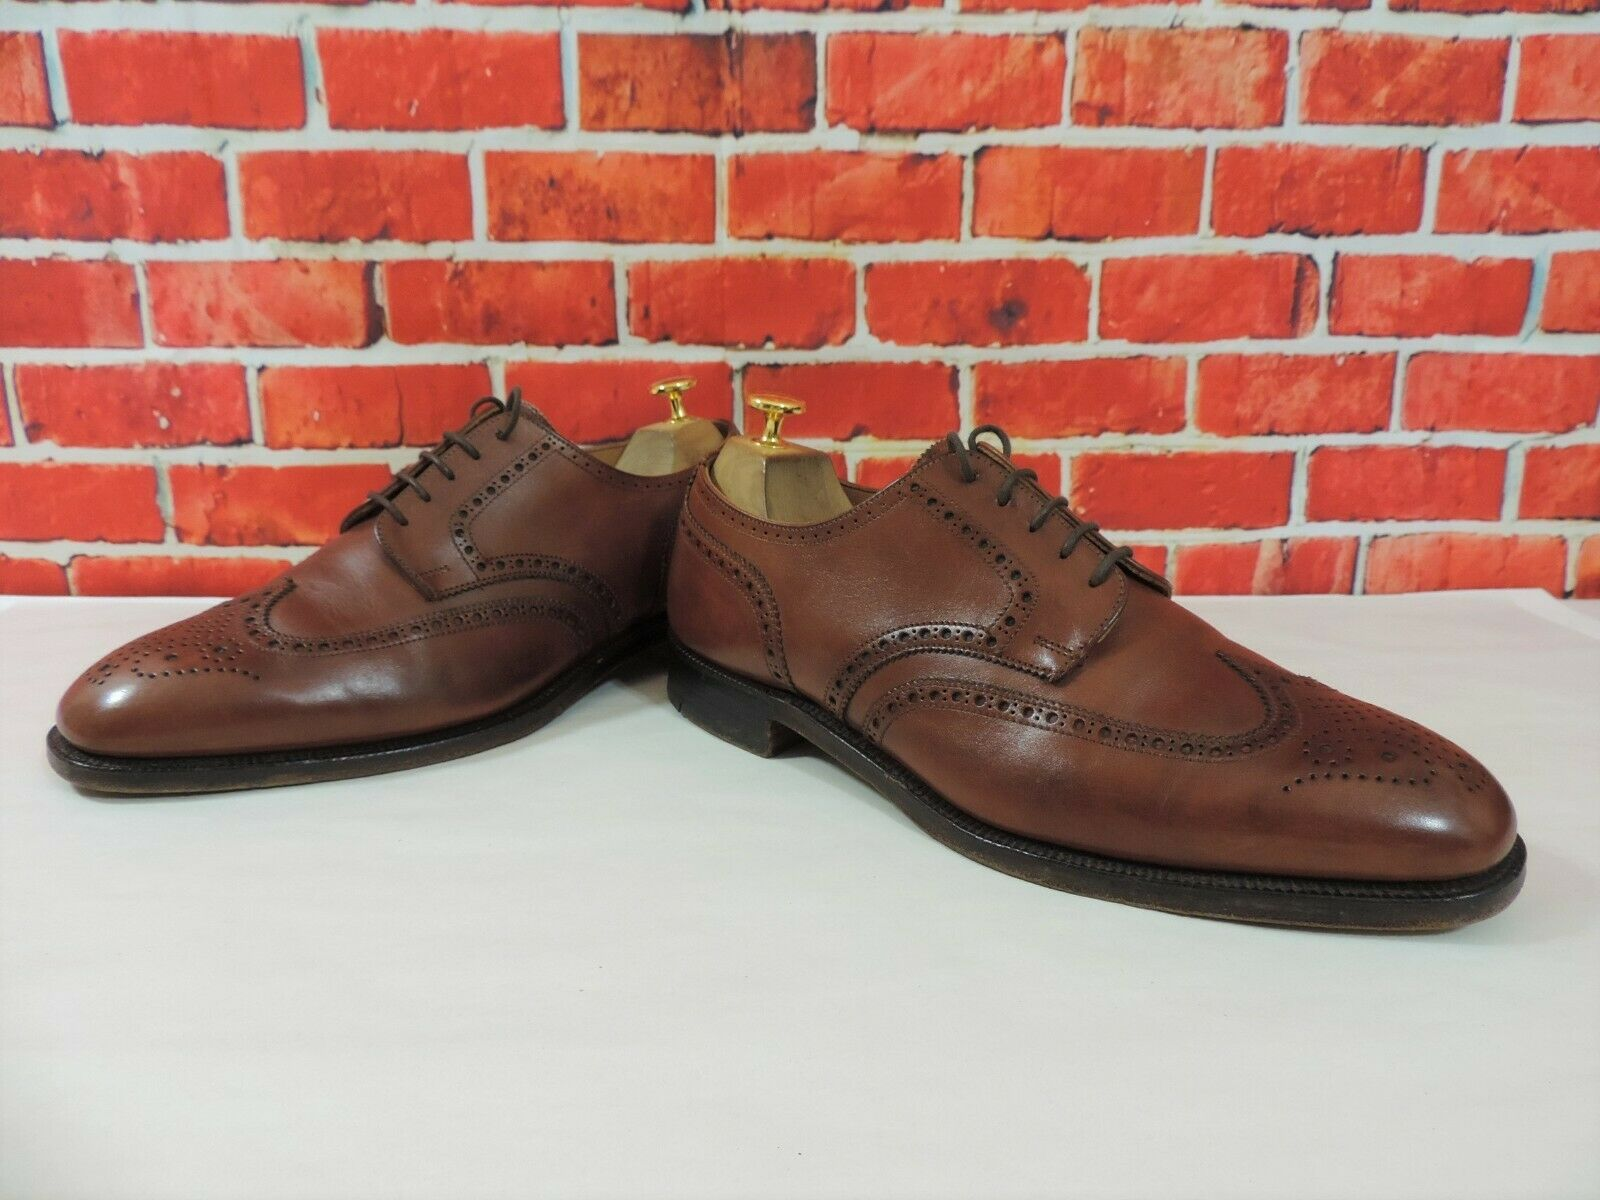 Crockett & Jones for Hackett Brogues UK 8.5 F US 9.5 EU 42.5 Tan Minor Use